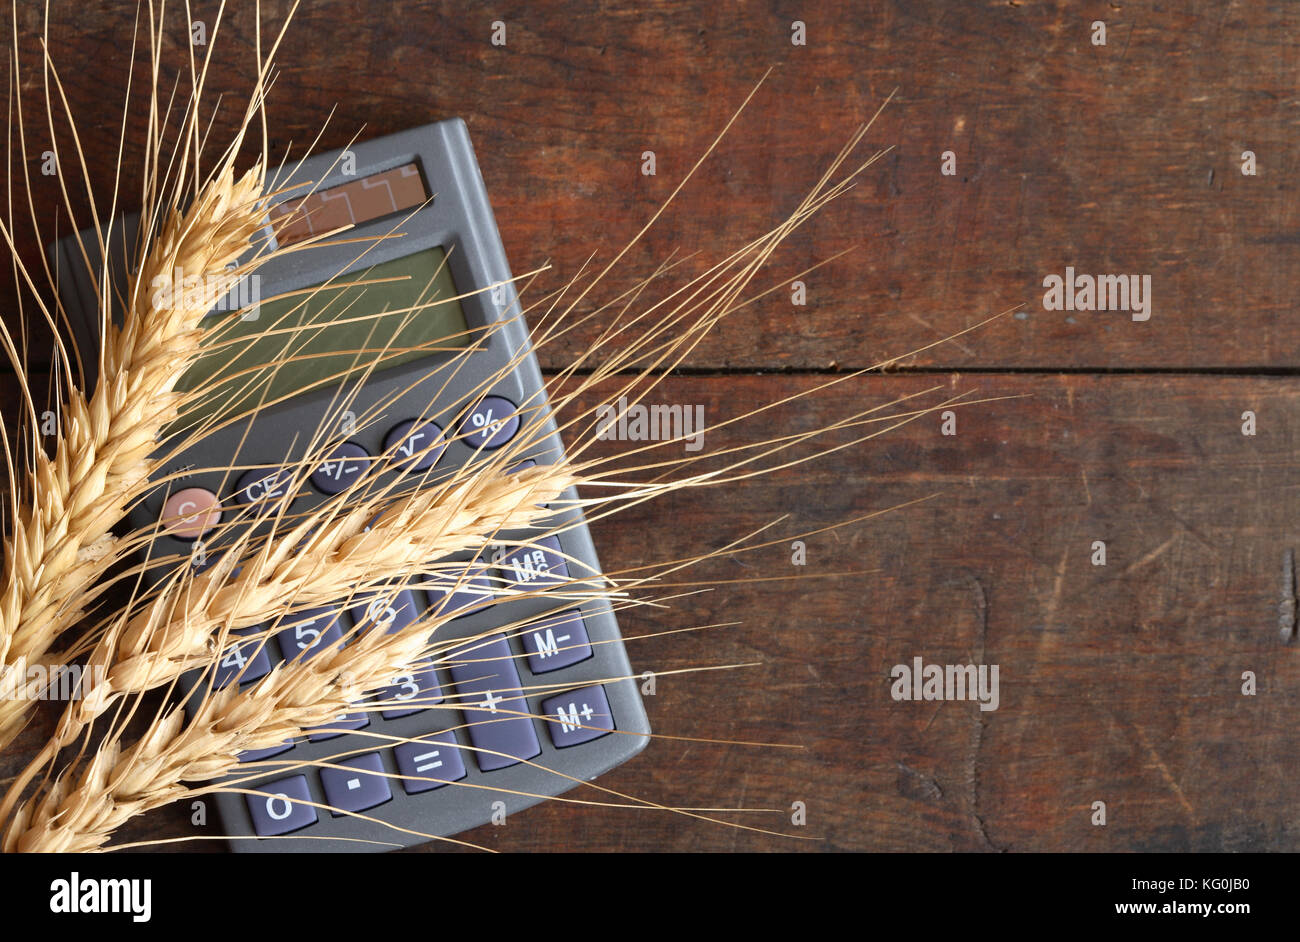 Cost of wheat stock photos cost of wheat stock images for Straw bale house cost calculator